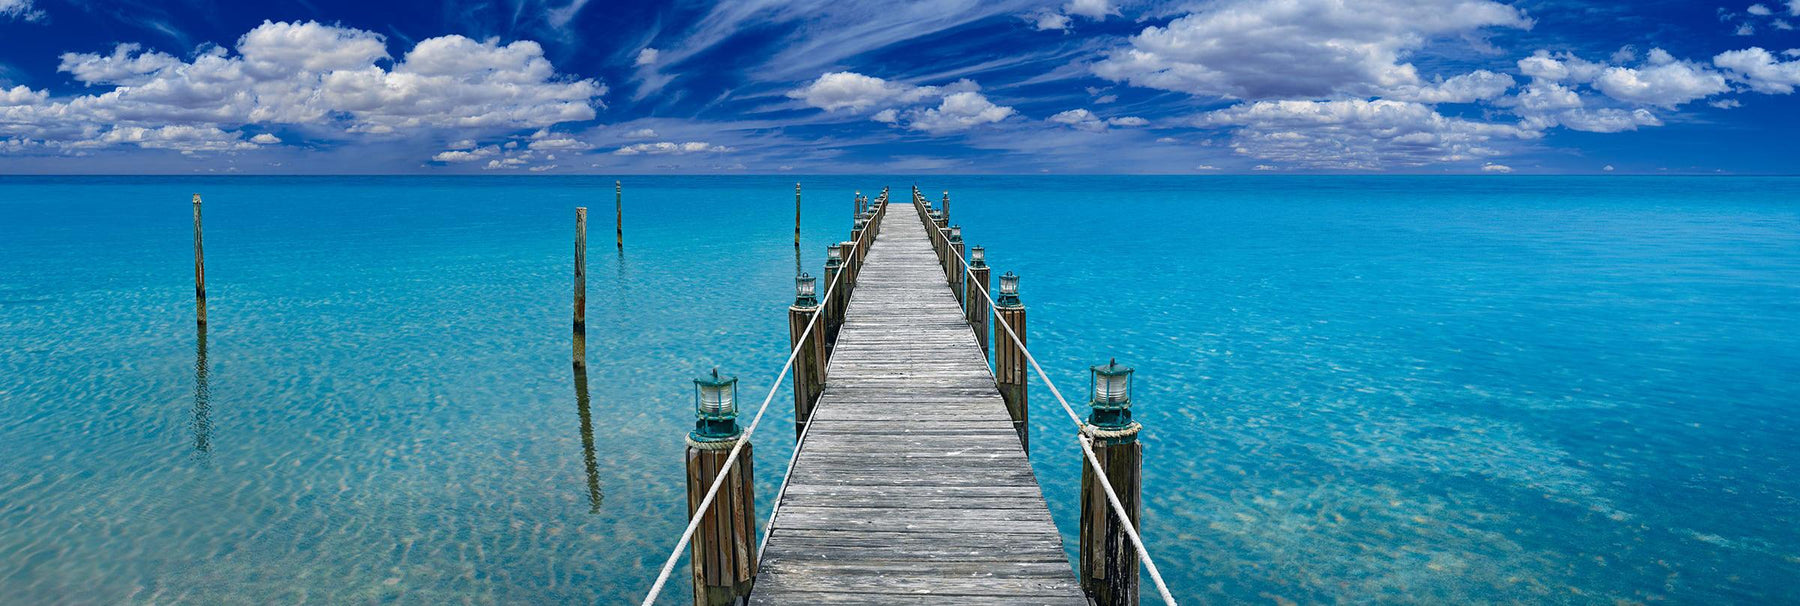 Old wooden jetty with white rope and lanterns leading over a turquoise ocean in Key West Florida